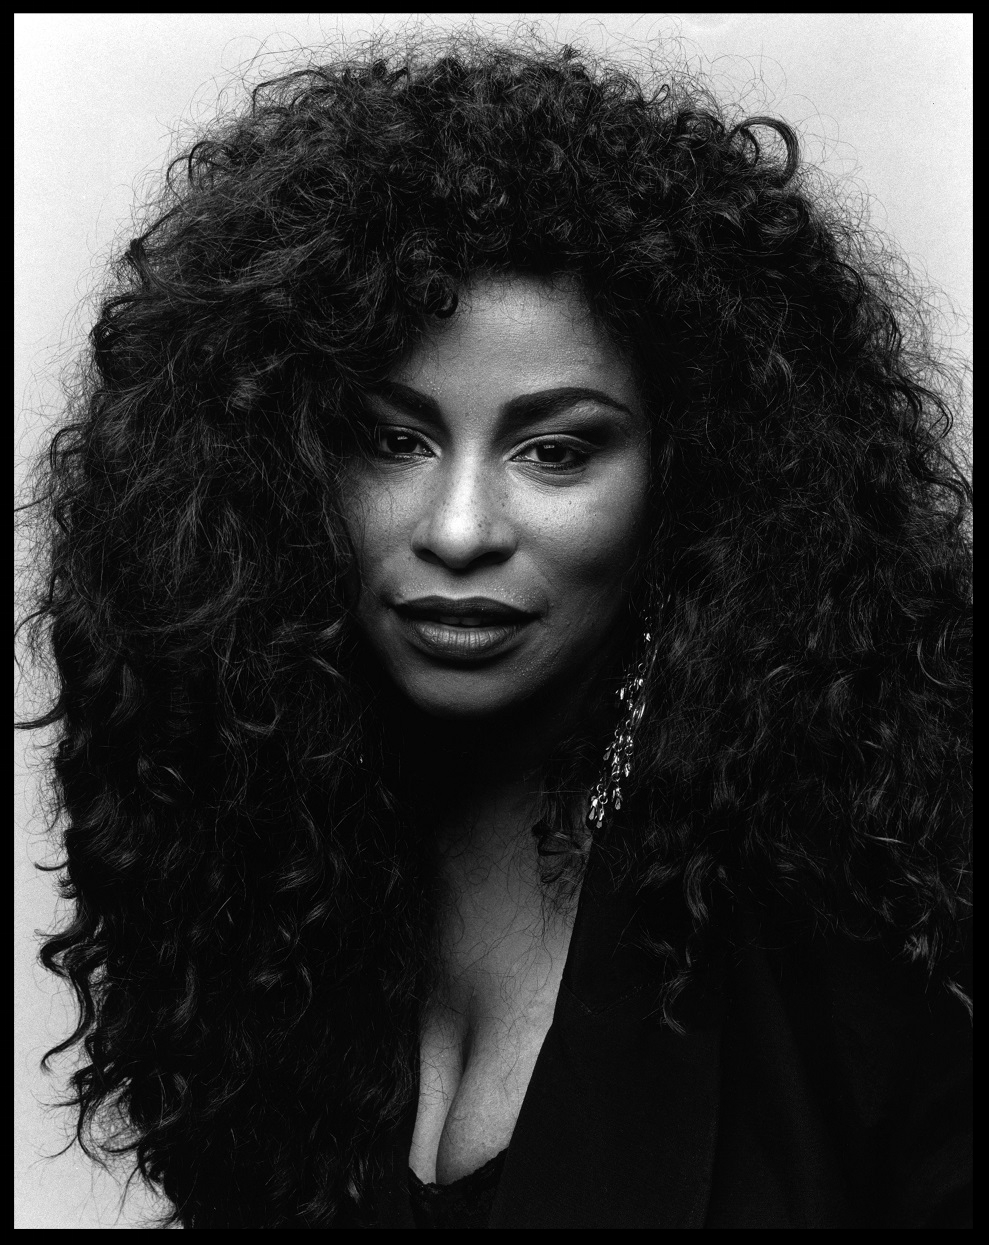 American singer Chaka Khan's 1980 hit Any Love was the basis for Massive Attack's cover version of the song